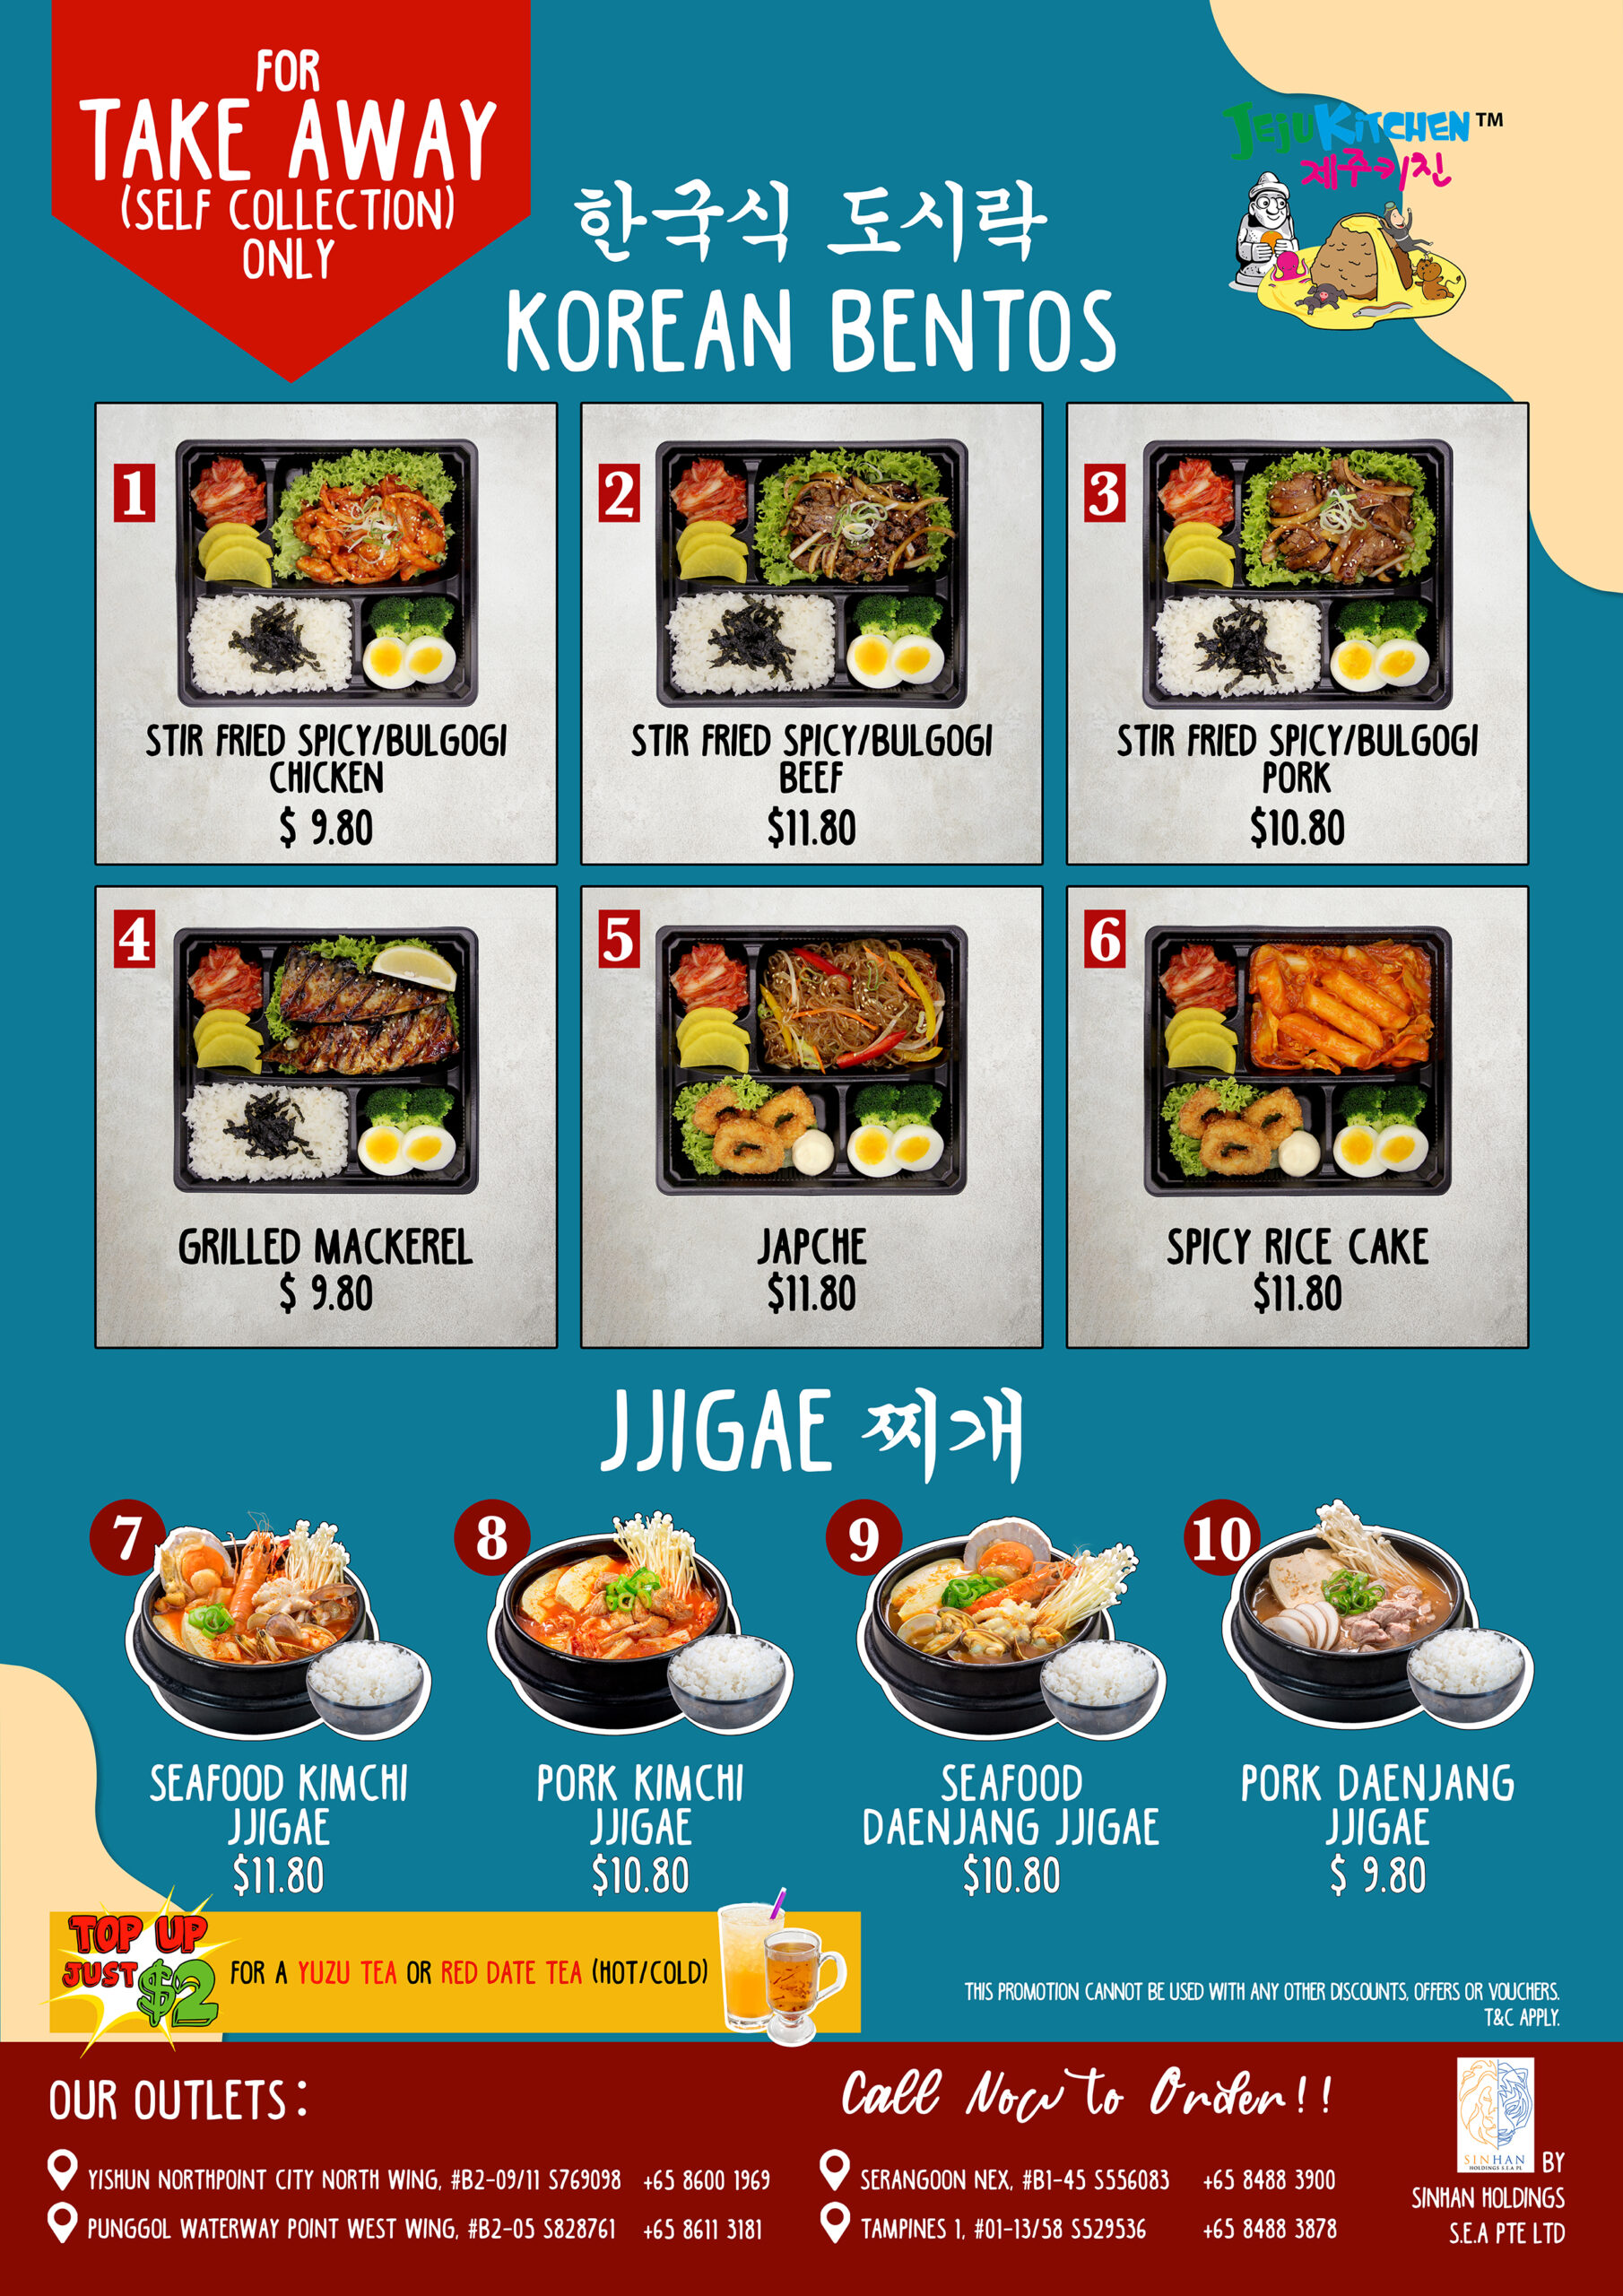 ❣️KOREAN BENTOS & JJIGAES are selling at all our Jeju Kitchen Outlets❣️